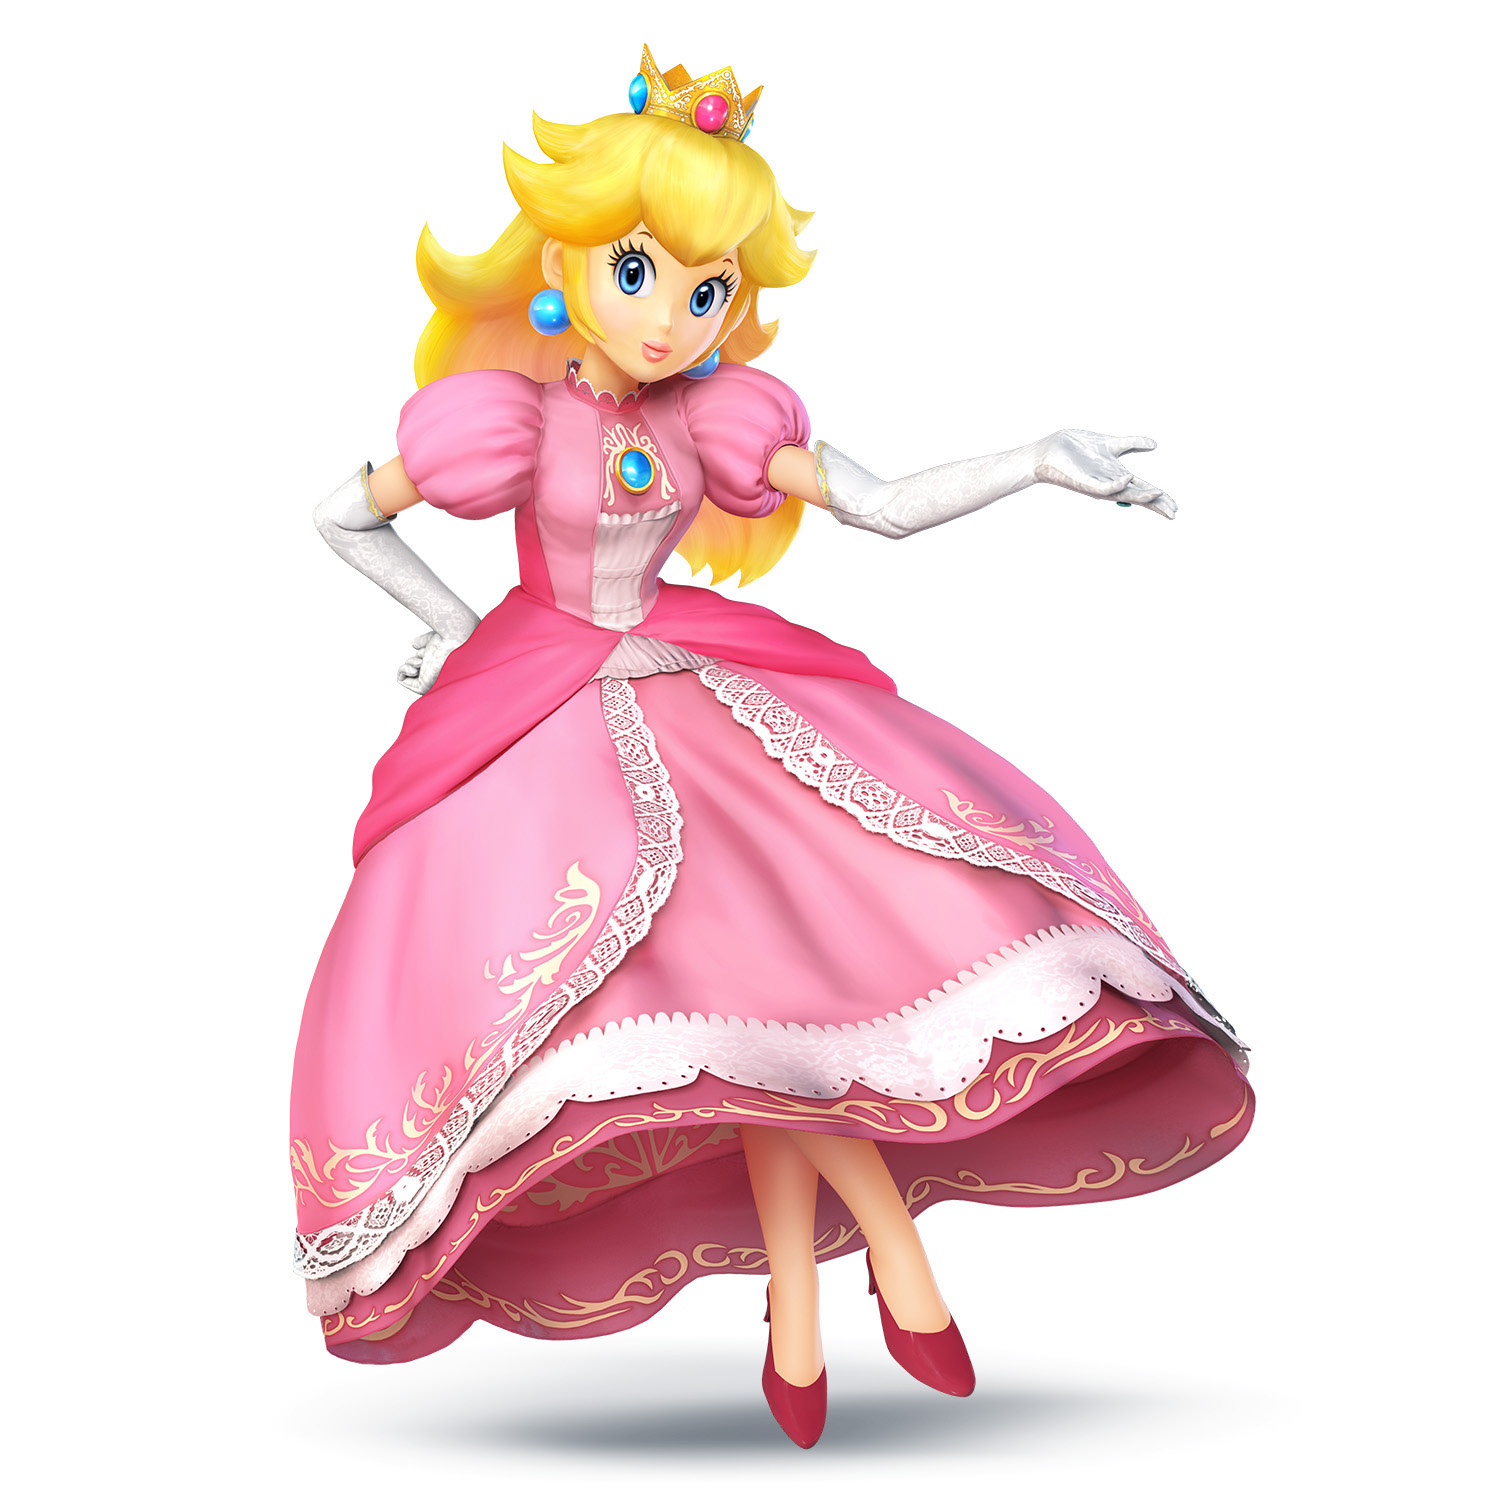 Peach (Super Smash Bros. for Nintendo 3DS and Wii U)